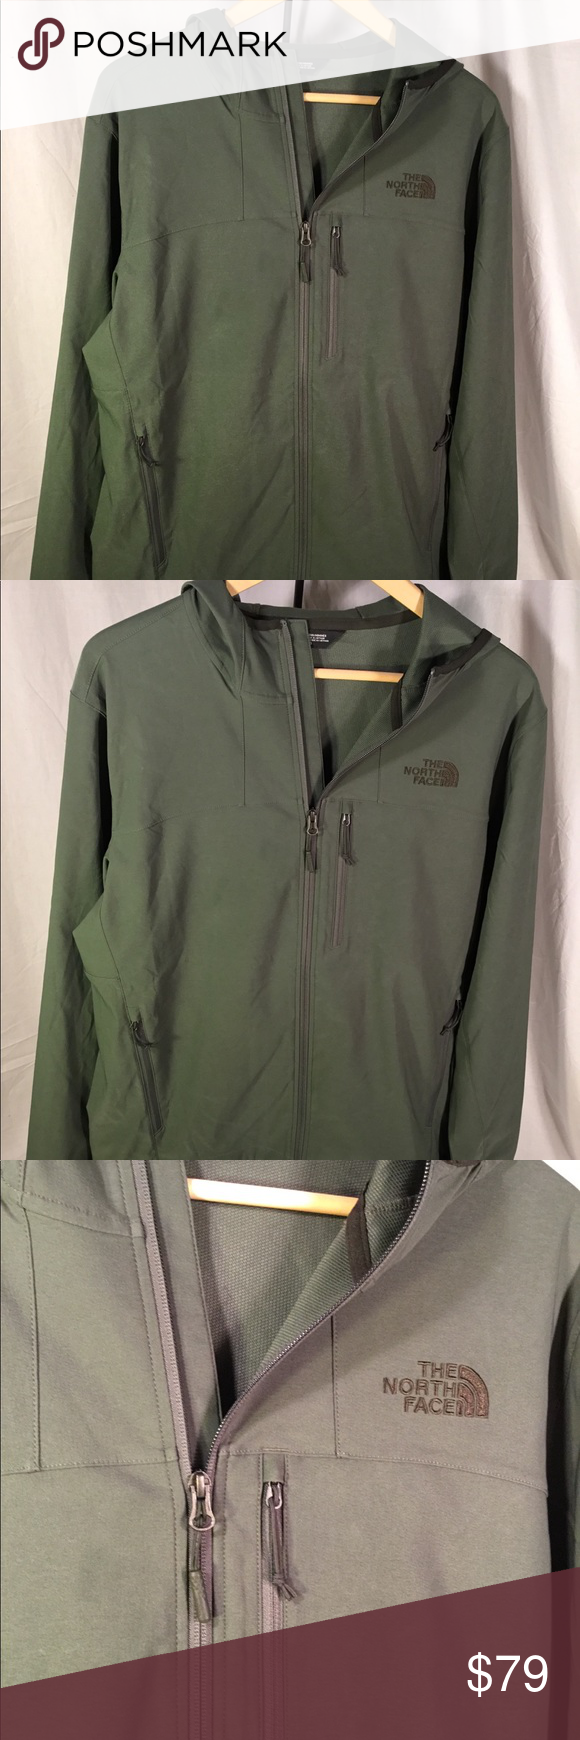 Mens The North Face Hommes Performance Jacket Jackets North Face Jacket Clothes Design [ 1740 x 580 Pixel ]